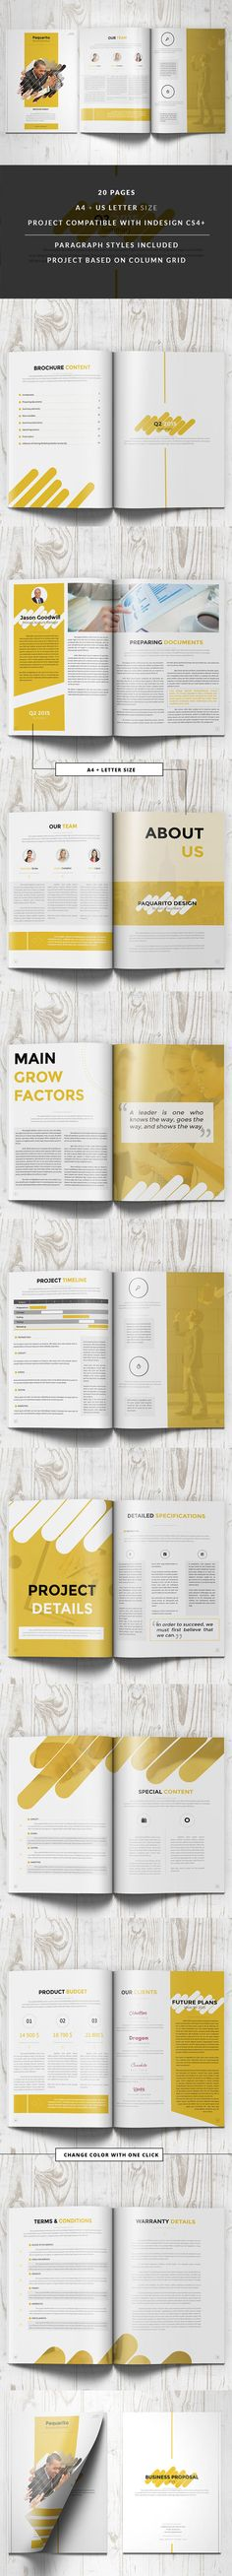 Project Proposal Brochure 22 Unique Layouts Template InDesign INDD - project proposal